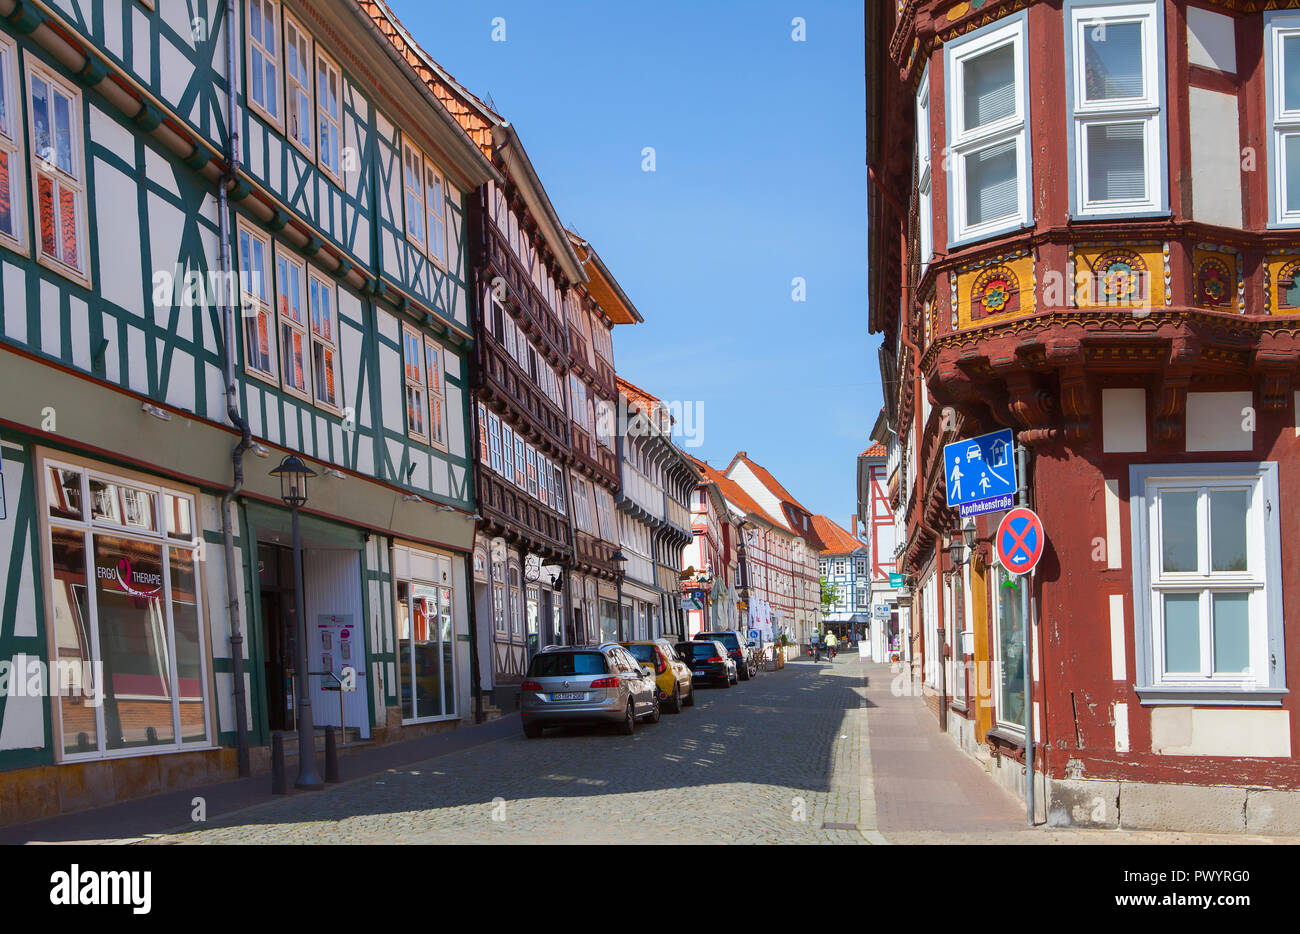 Steinstrasse, Duderstadt, Lower Saxony, Germany, Europe - Stock Image